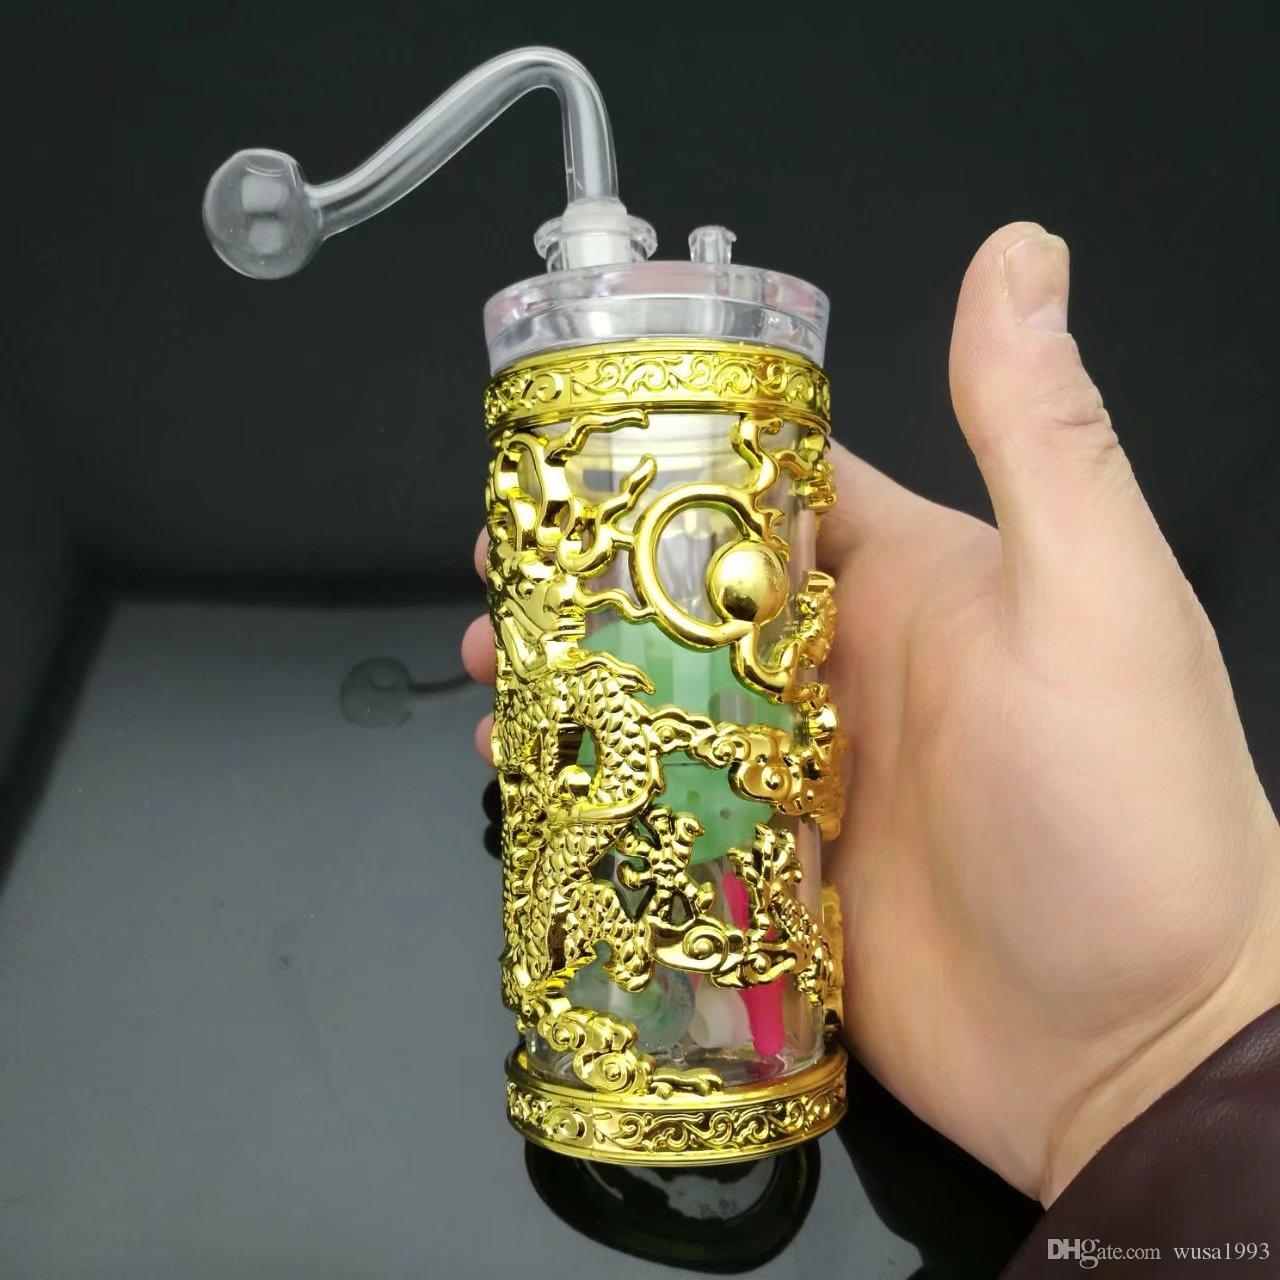 wholesalers ----- 2015 new Cylindrical Panlong Acrylic Hookah, size 14 * 5cm, accessories pot, walk the plank, straw